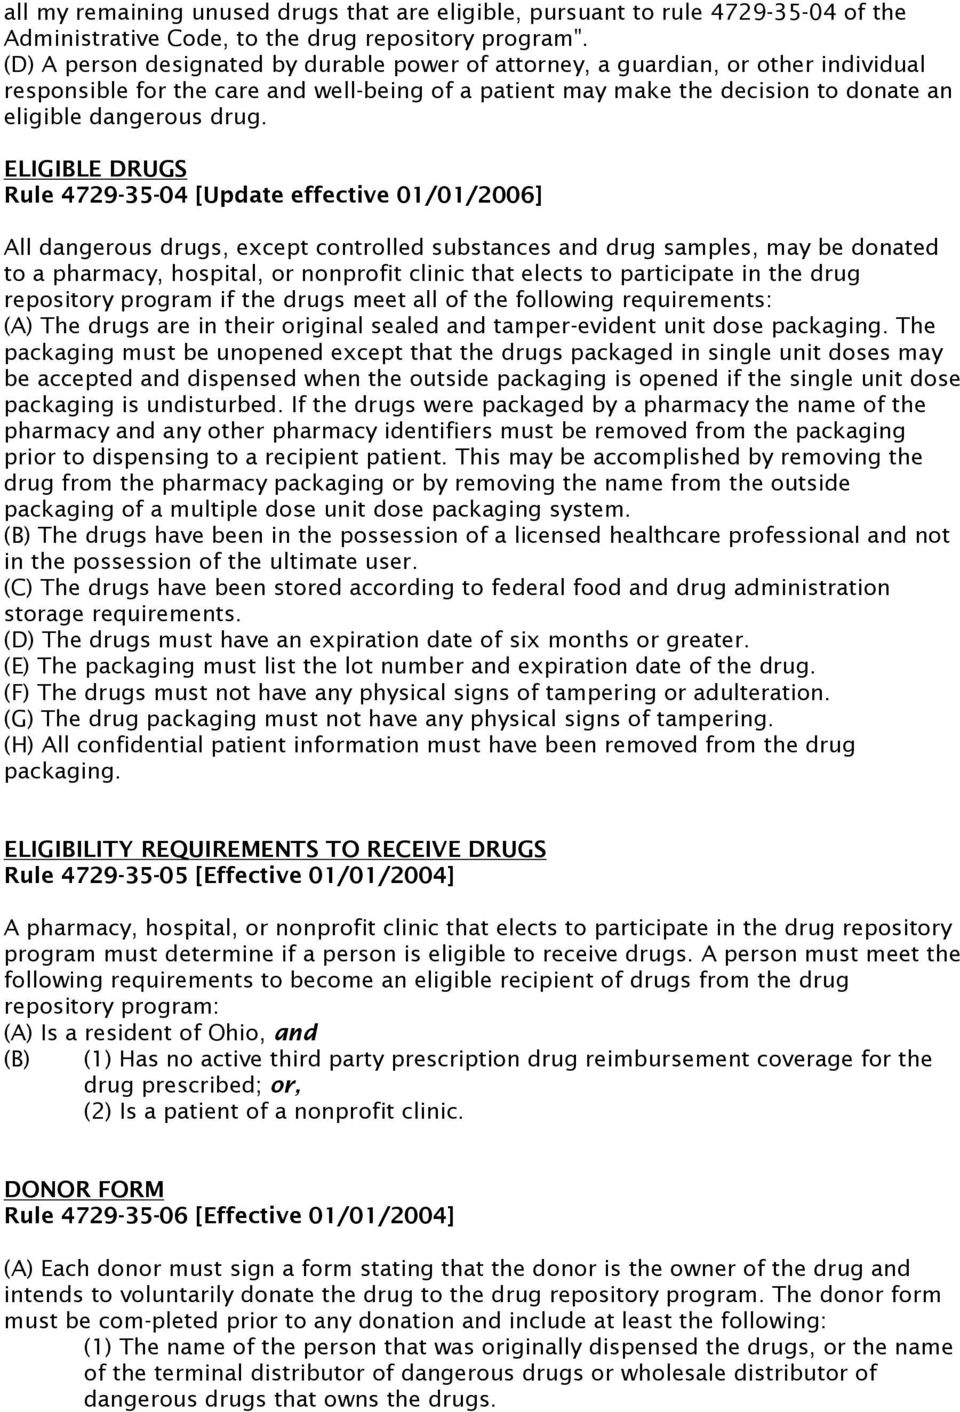 ELIGIBLE DRUGS Rule 4729-35-04 [Update effective 01/01/2006] All dangerous drugs, except controlled substances and drug samples, may be donated to a pharmacy, hospital, or nonprofit clinic that